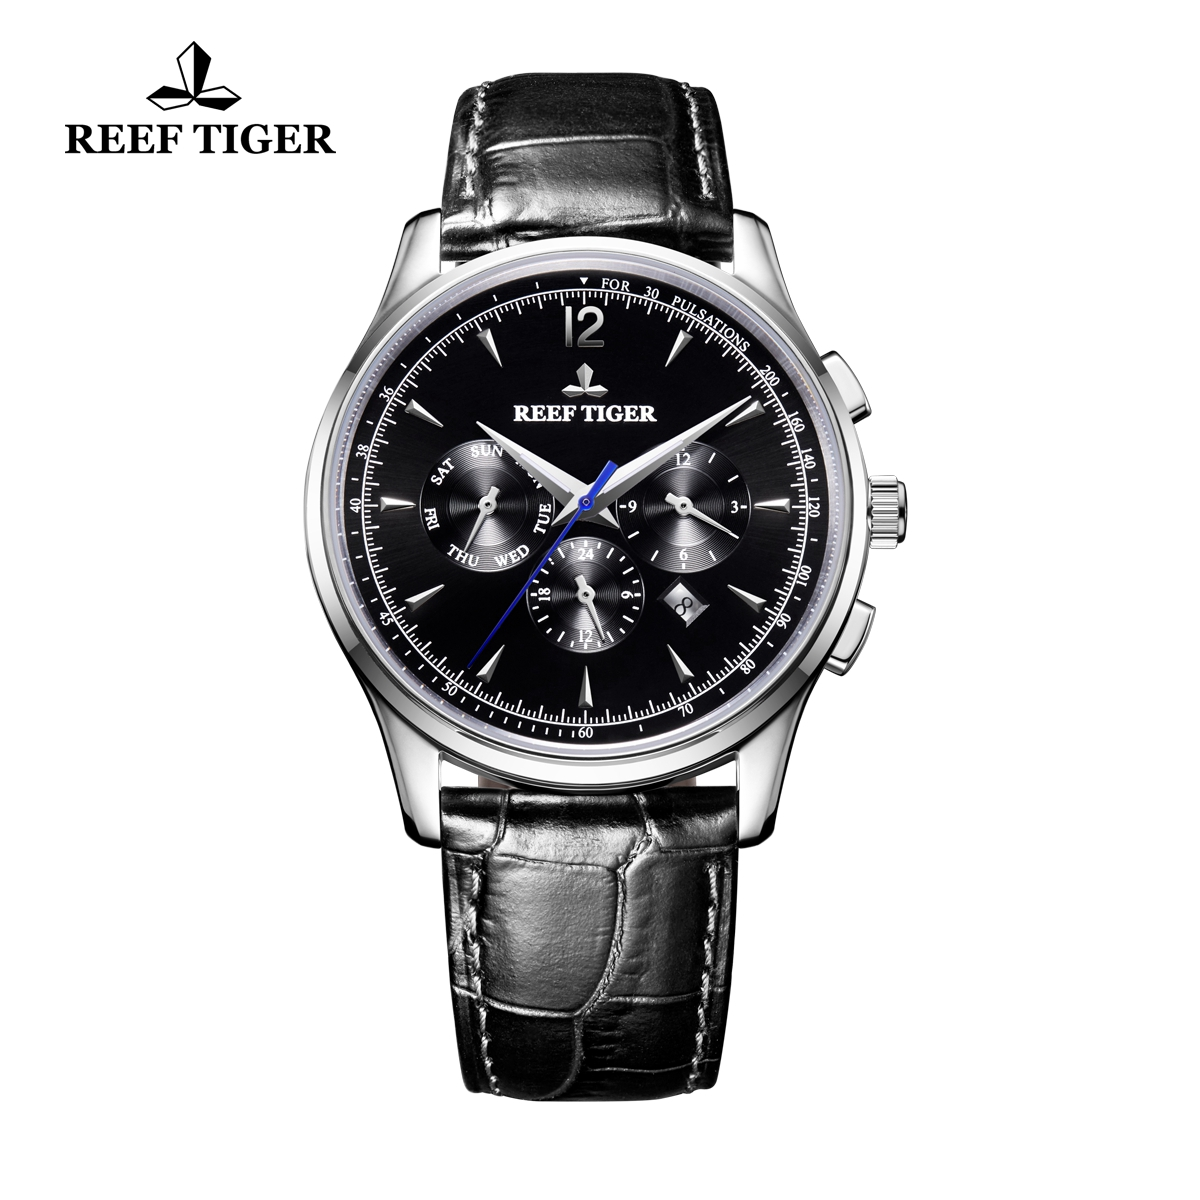 Reef Tiger Seattle Museum Dress Watch Steel Black Dial Black Leather Strap RGA1654-YBB